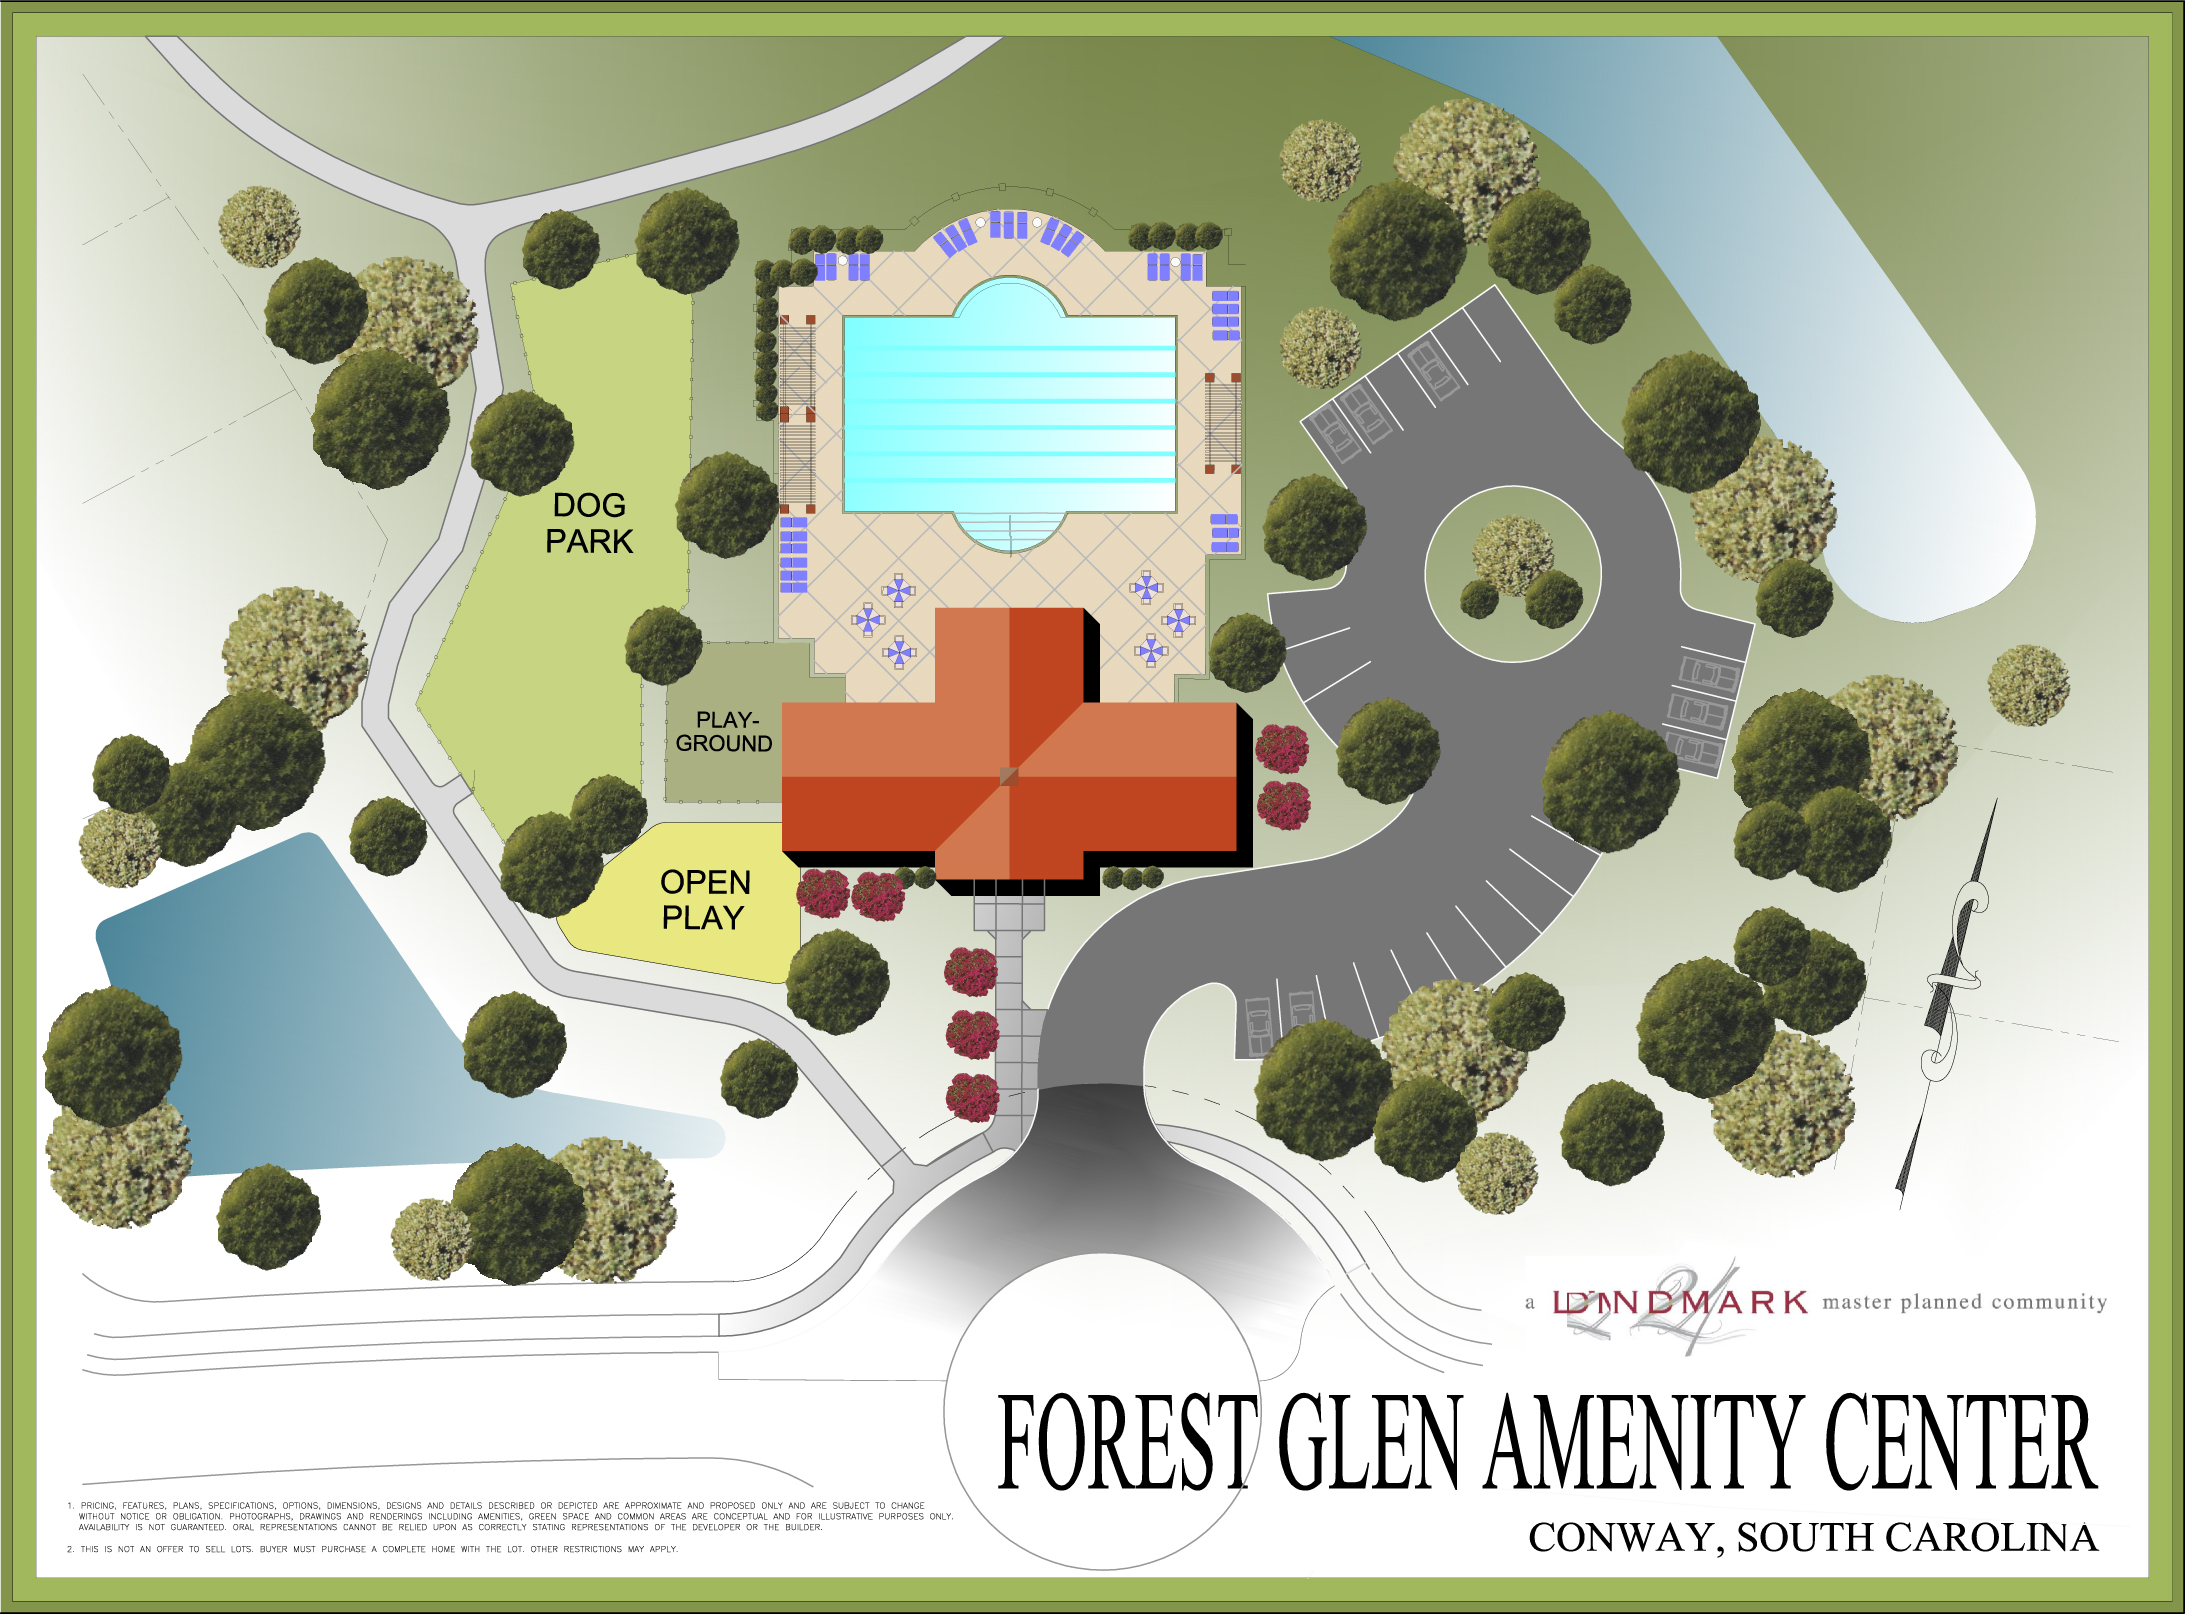 Forest Glen Amenity Center, Conway, South Carolina